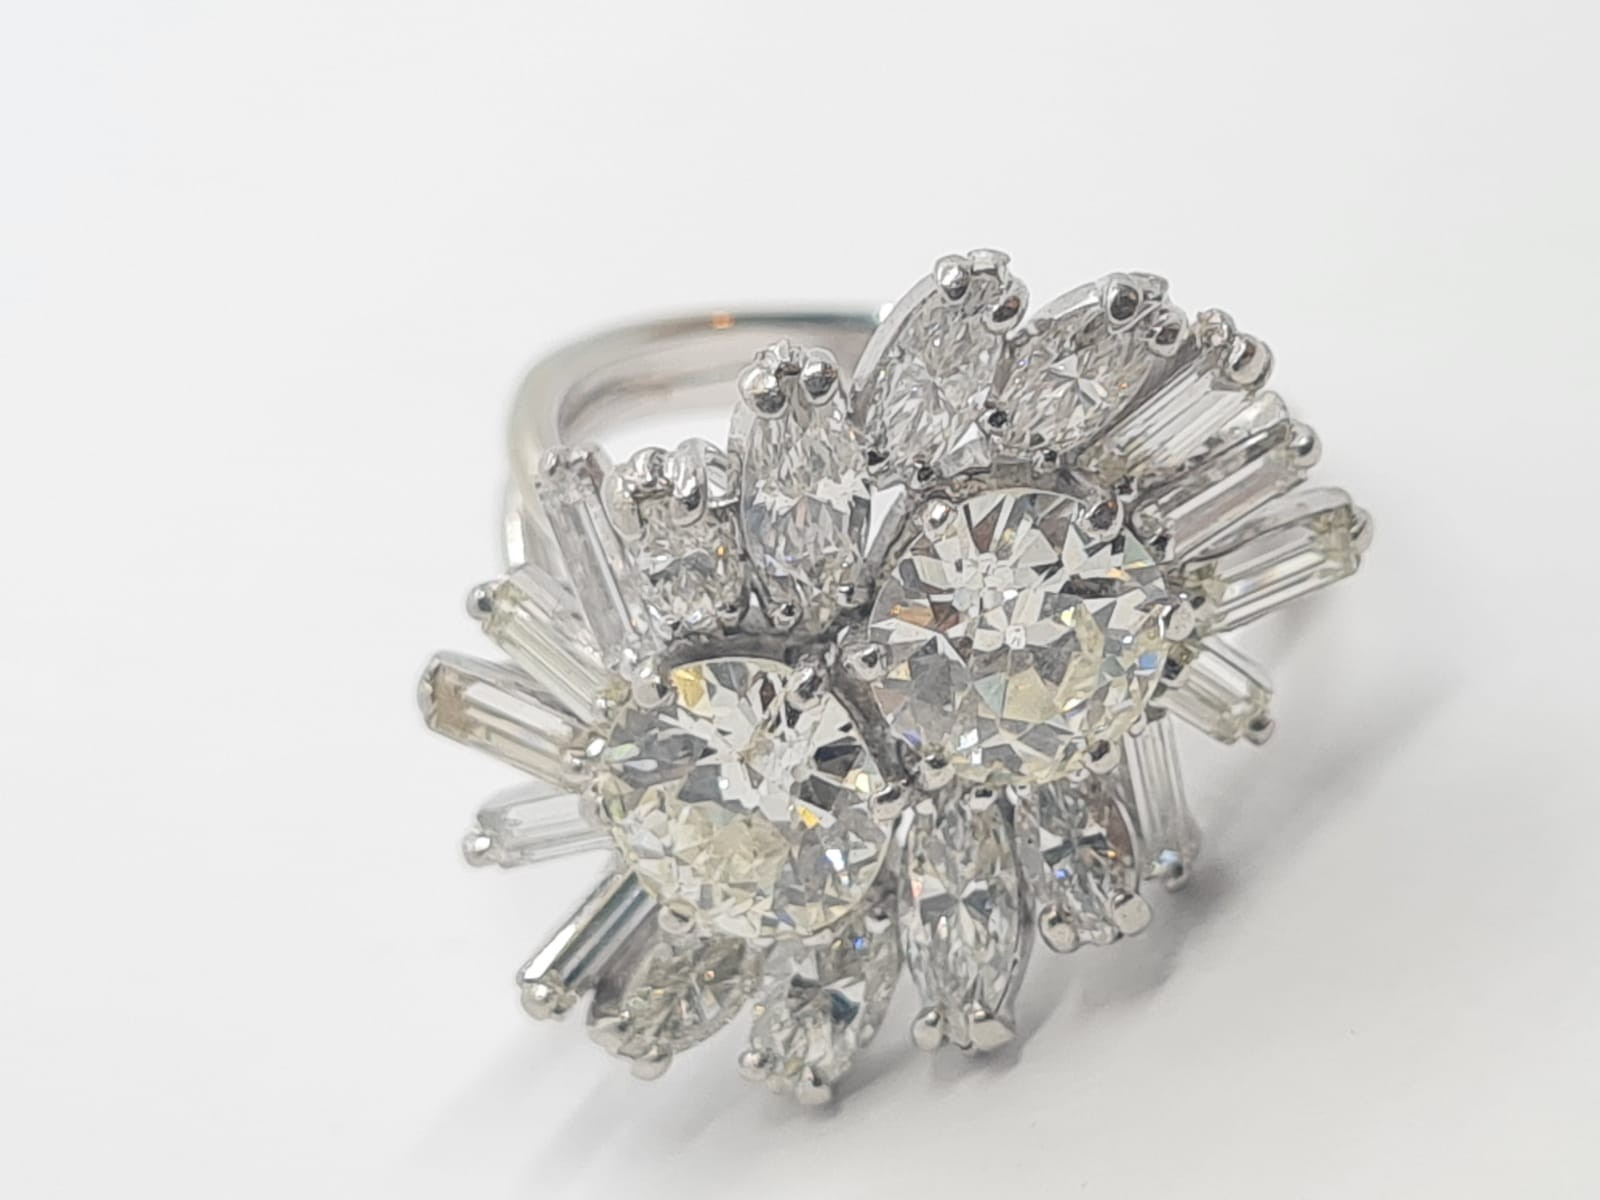 18k white gold diamond cluster ring with approx over 5ct diamonds in total, weight 10g and size M1/2 - Image 2 of 11